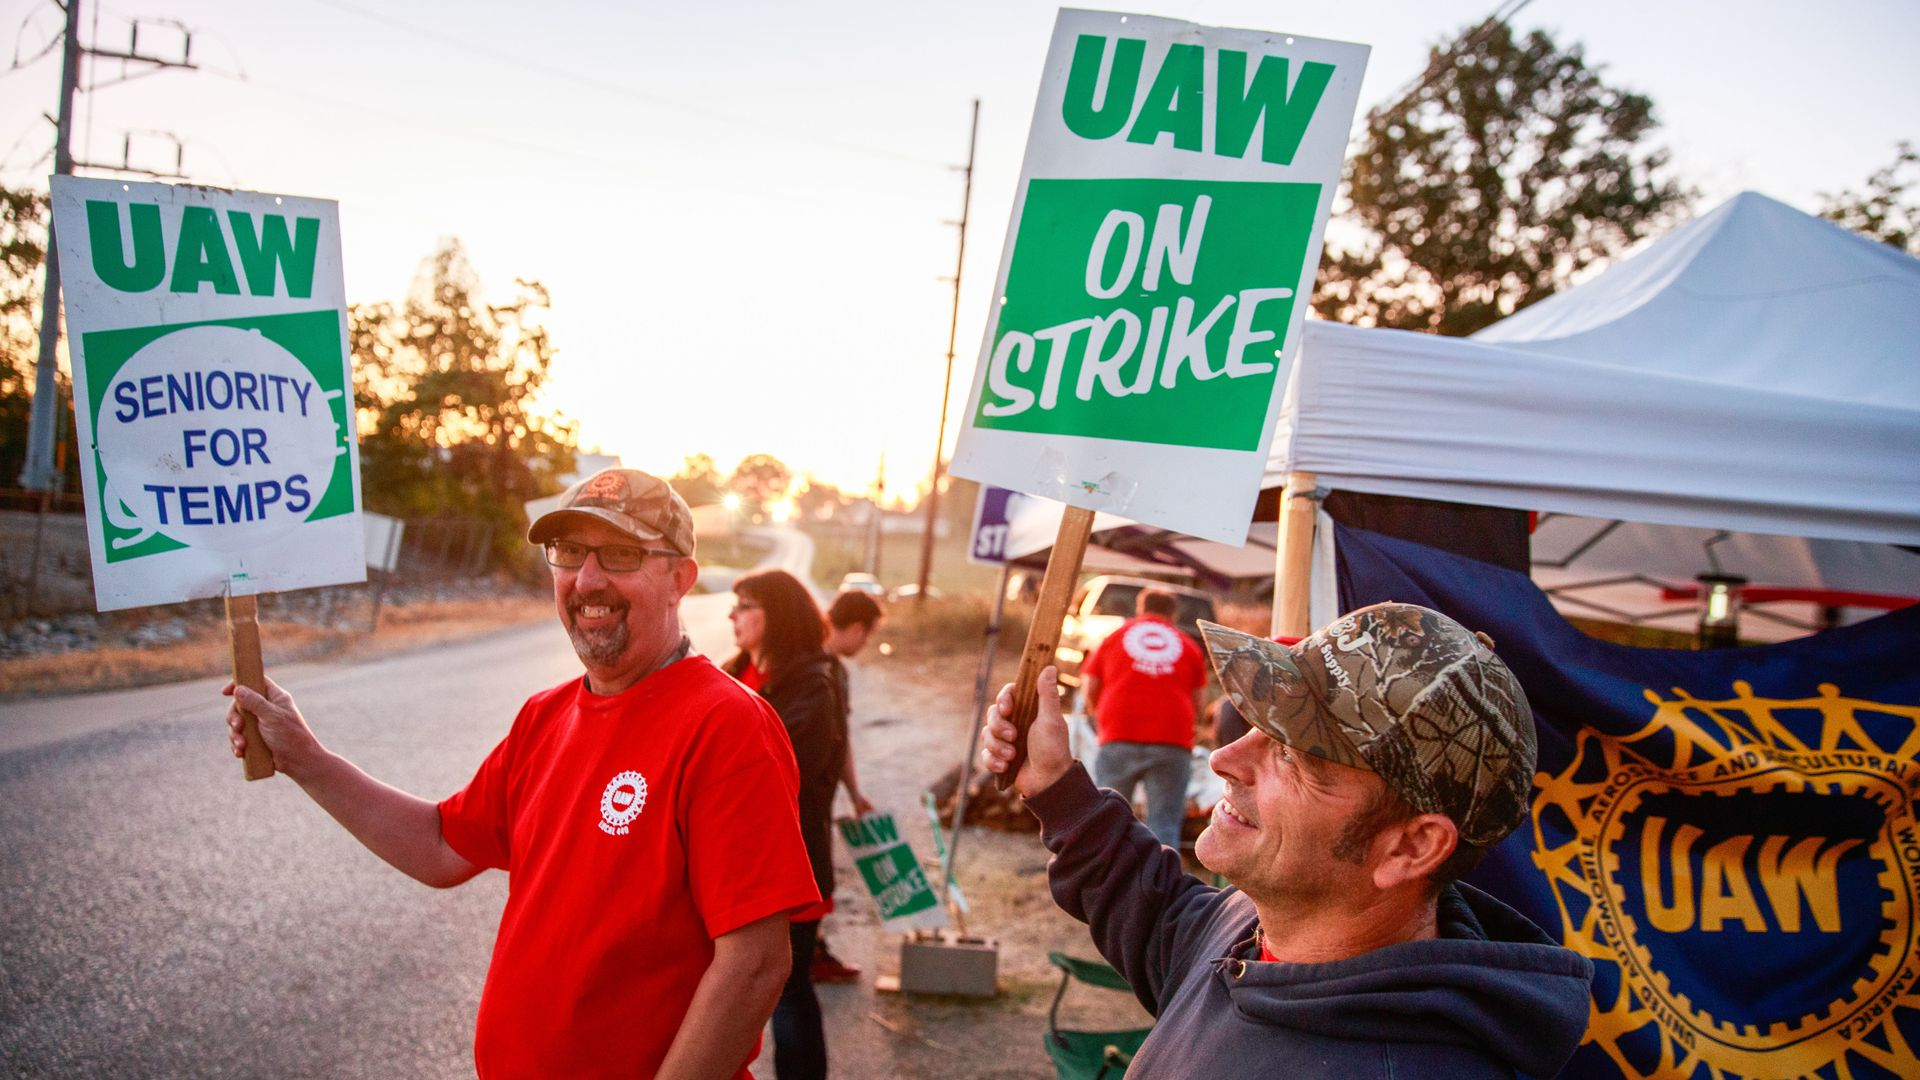 UAW members striking.